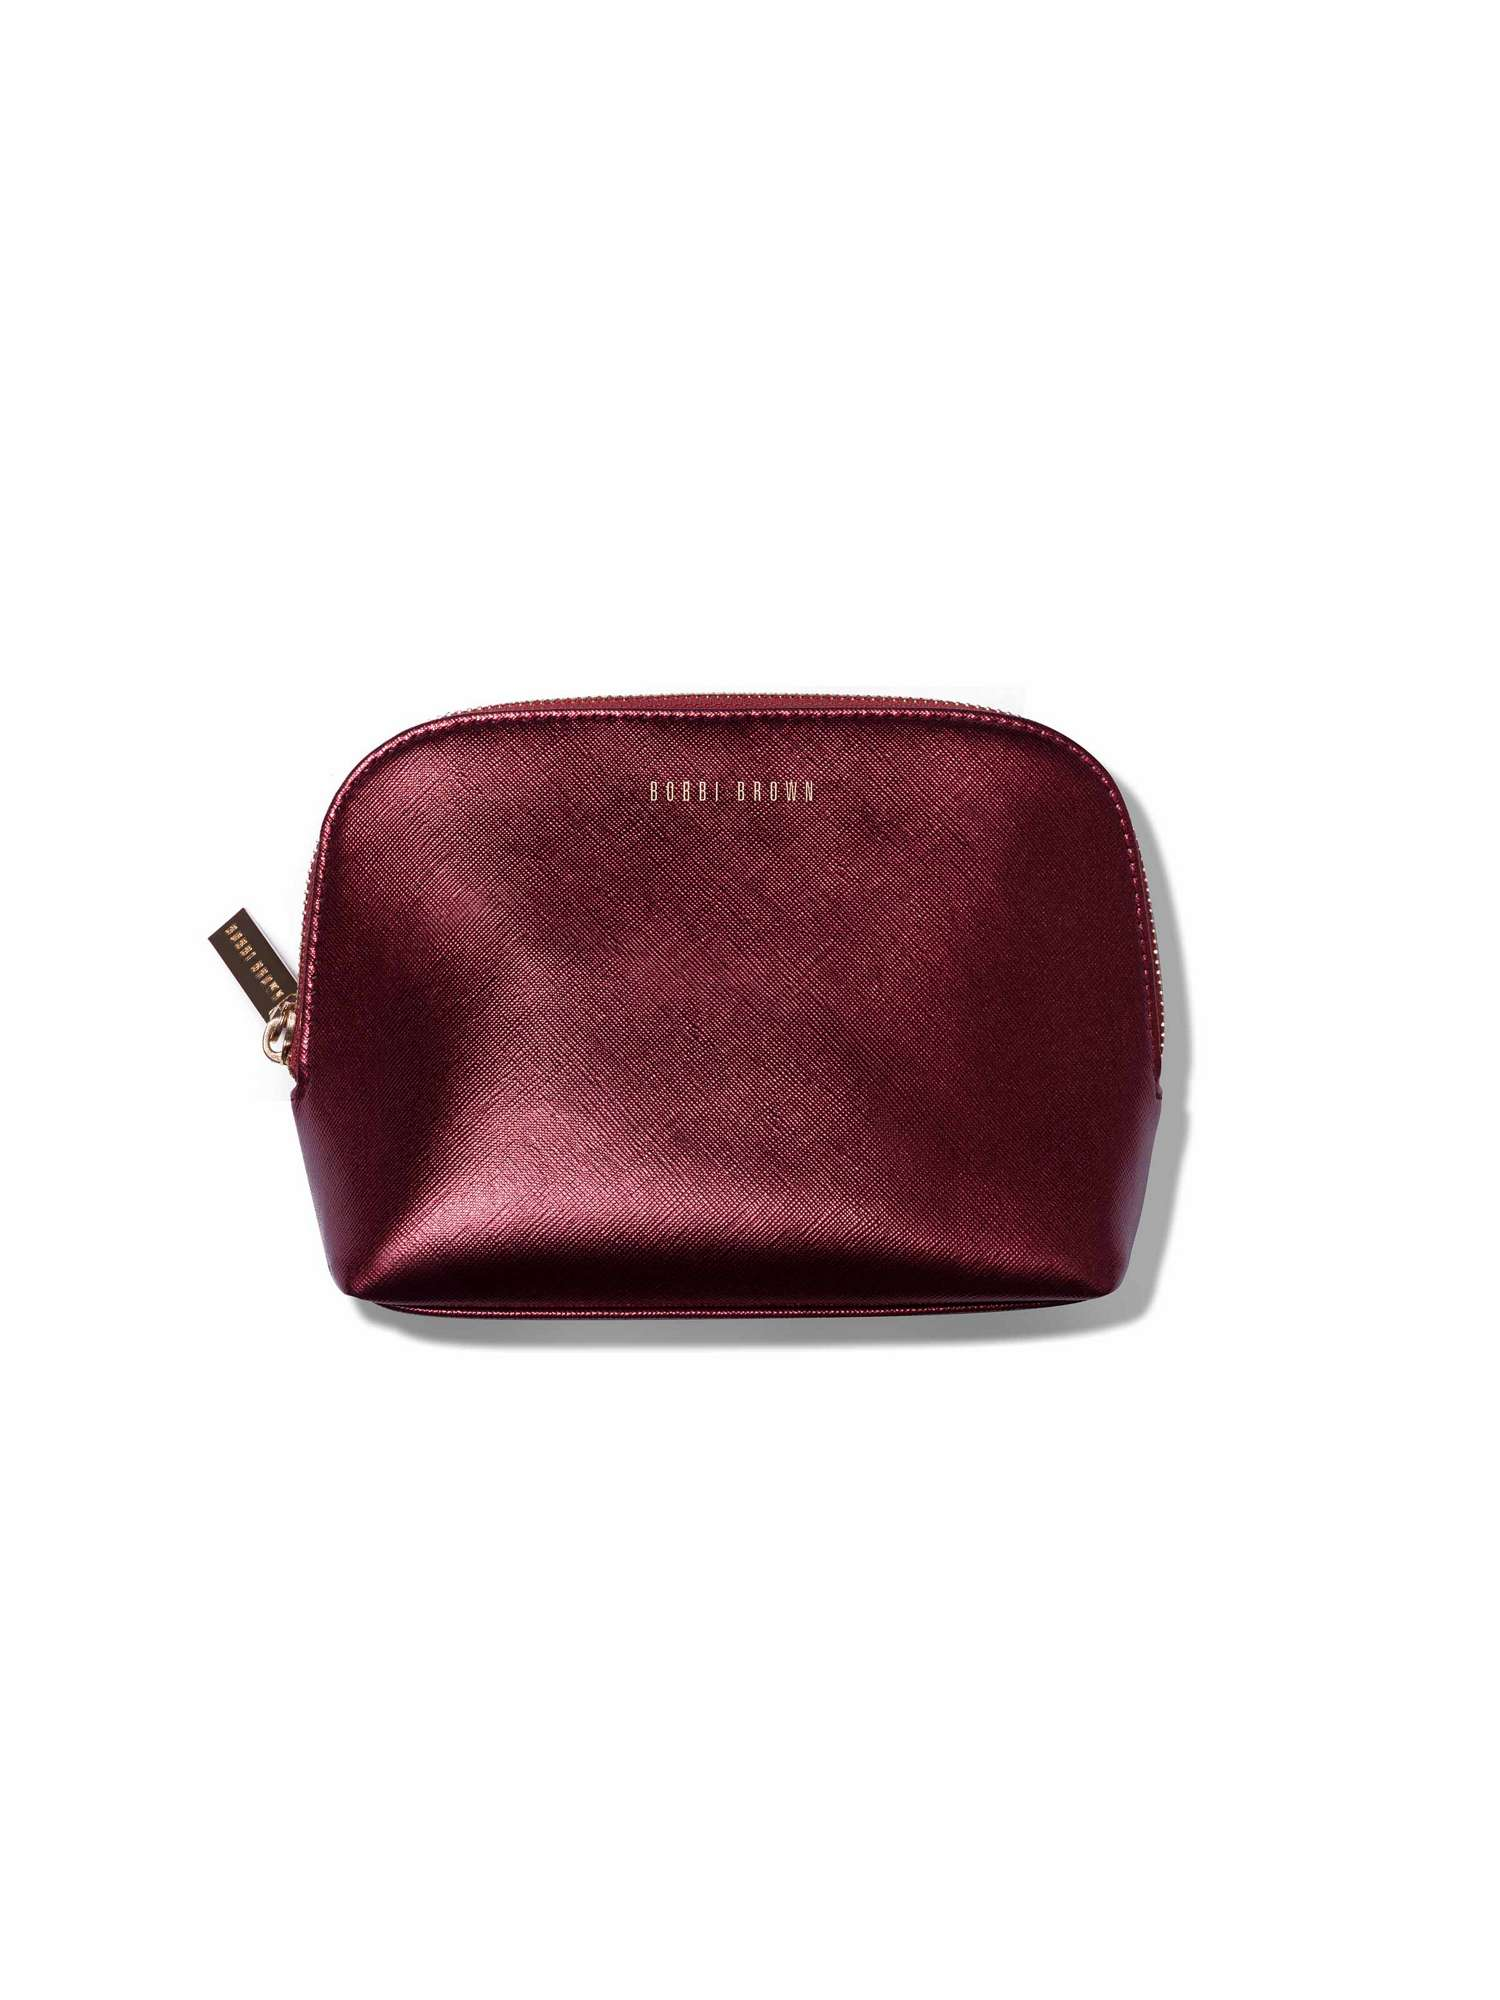 f9f5479e9e Bobbi Brown Small Limited Edition Holiday Makeup Bag. 280411160. £0.00.  selectedColor. Rollover to magnify or click to enlarge